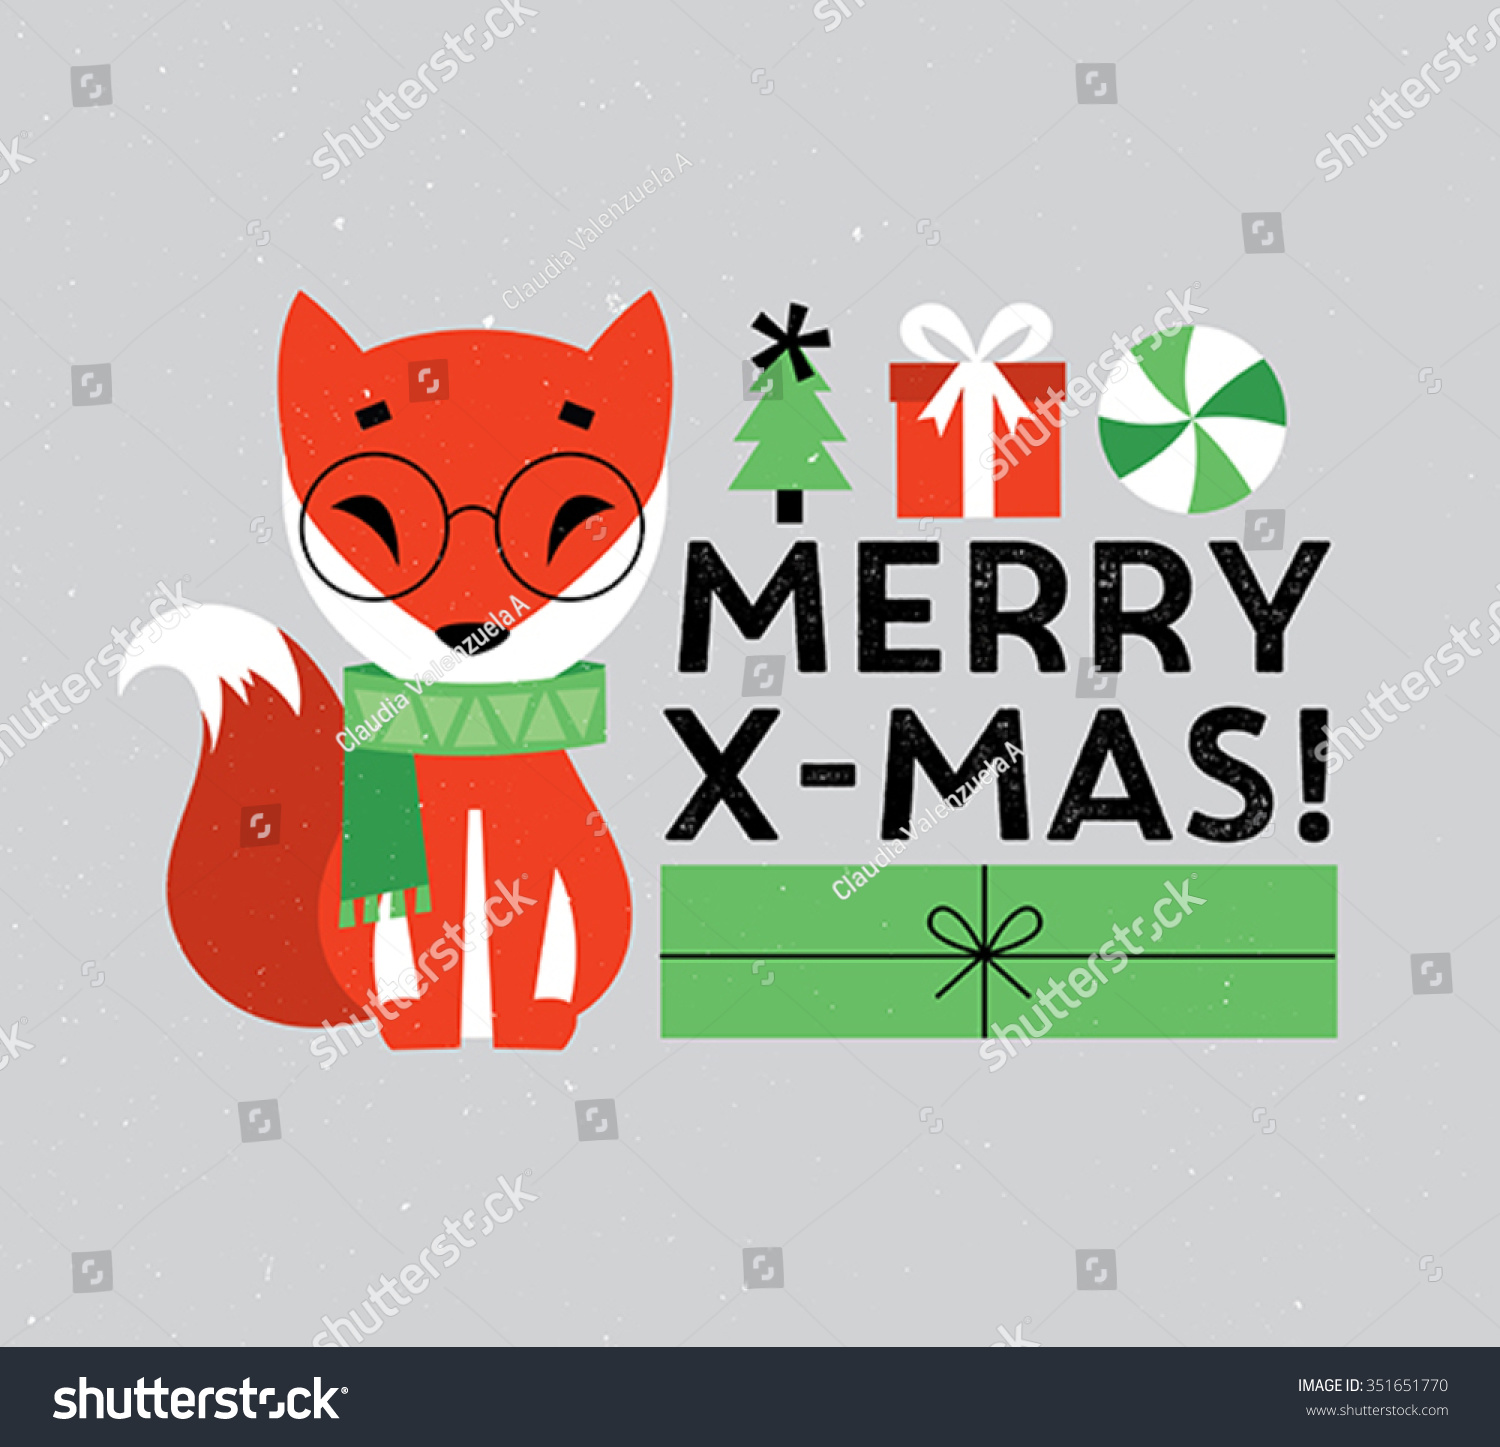 Cute Merry Xmas Fox Stock Vector (Royalty Free) 351651770 - Shutterstock